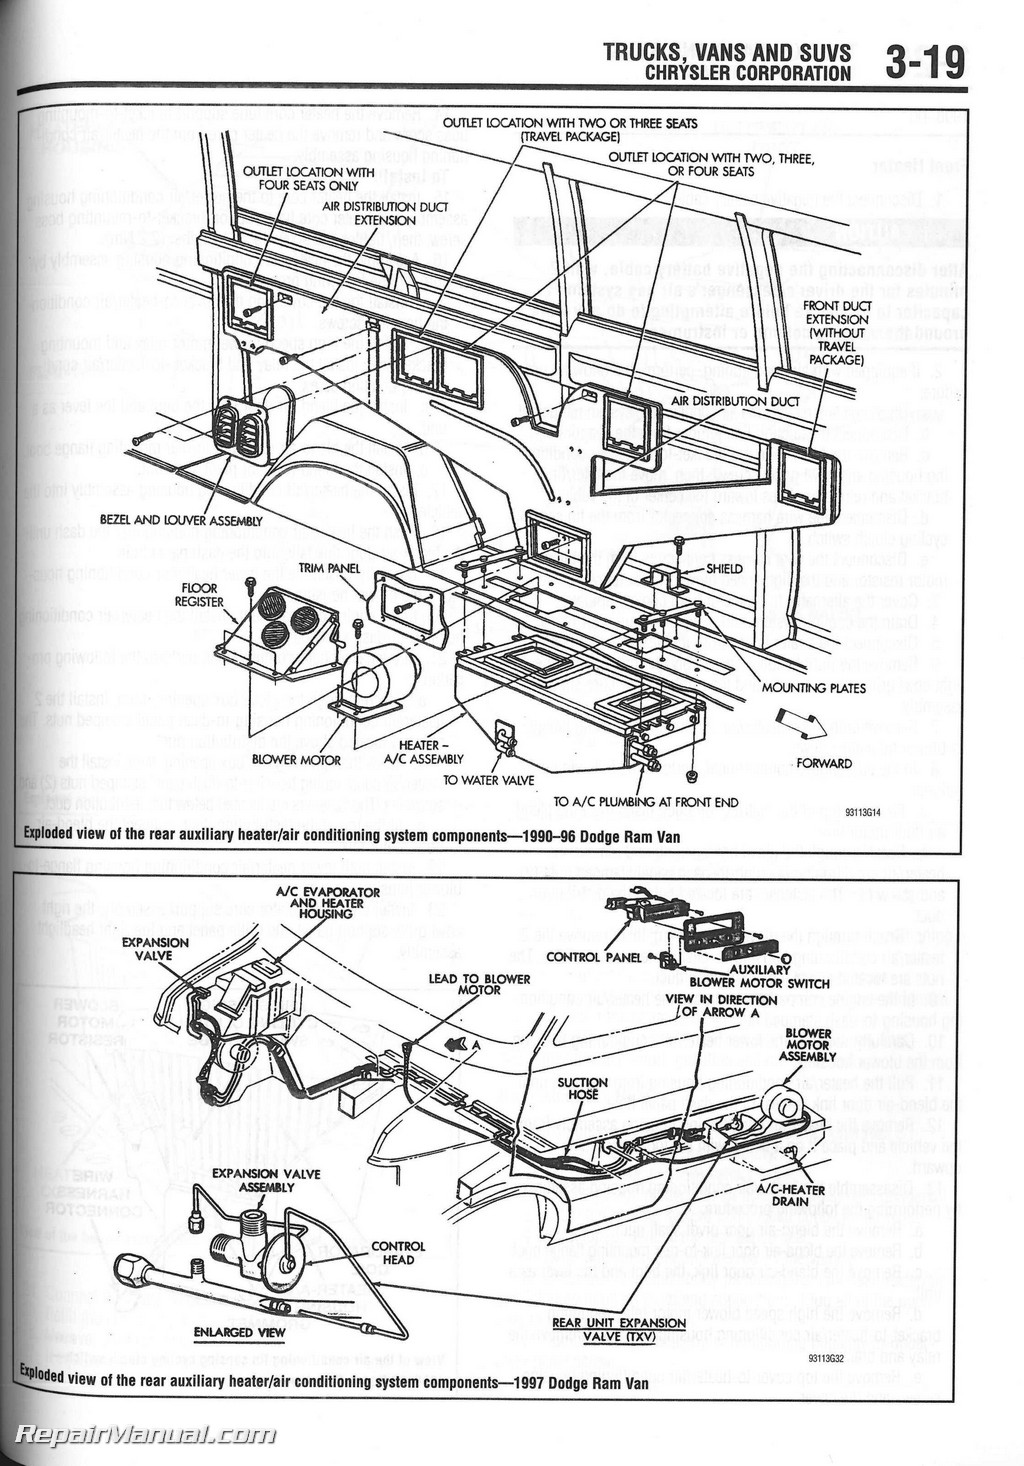 Chilton 1990-2000 Heater Core Installation Manual : CH9311